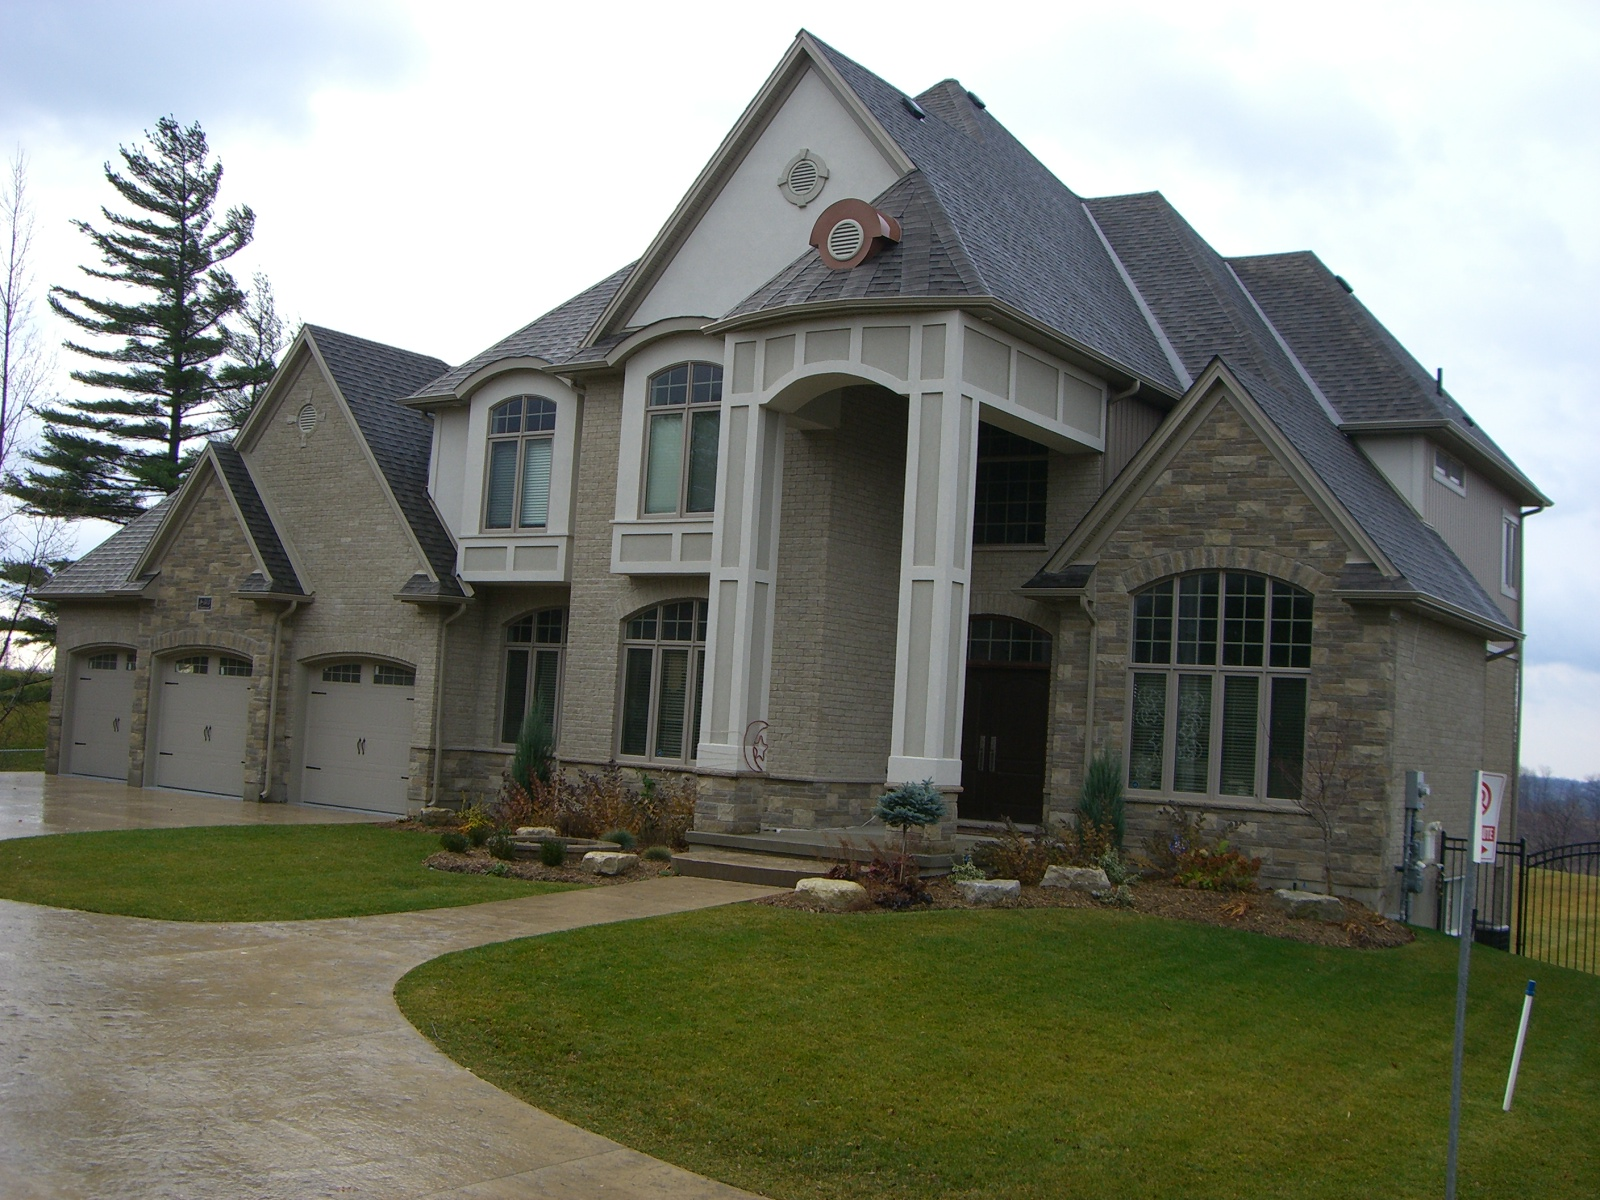 Royal Premier Homes - Eco Friendly Home Builders London - Crestwood I - House Outside Front View